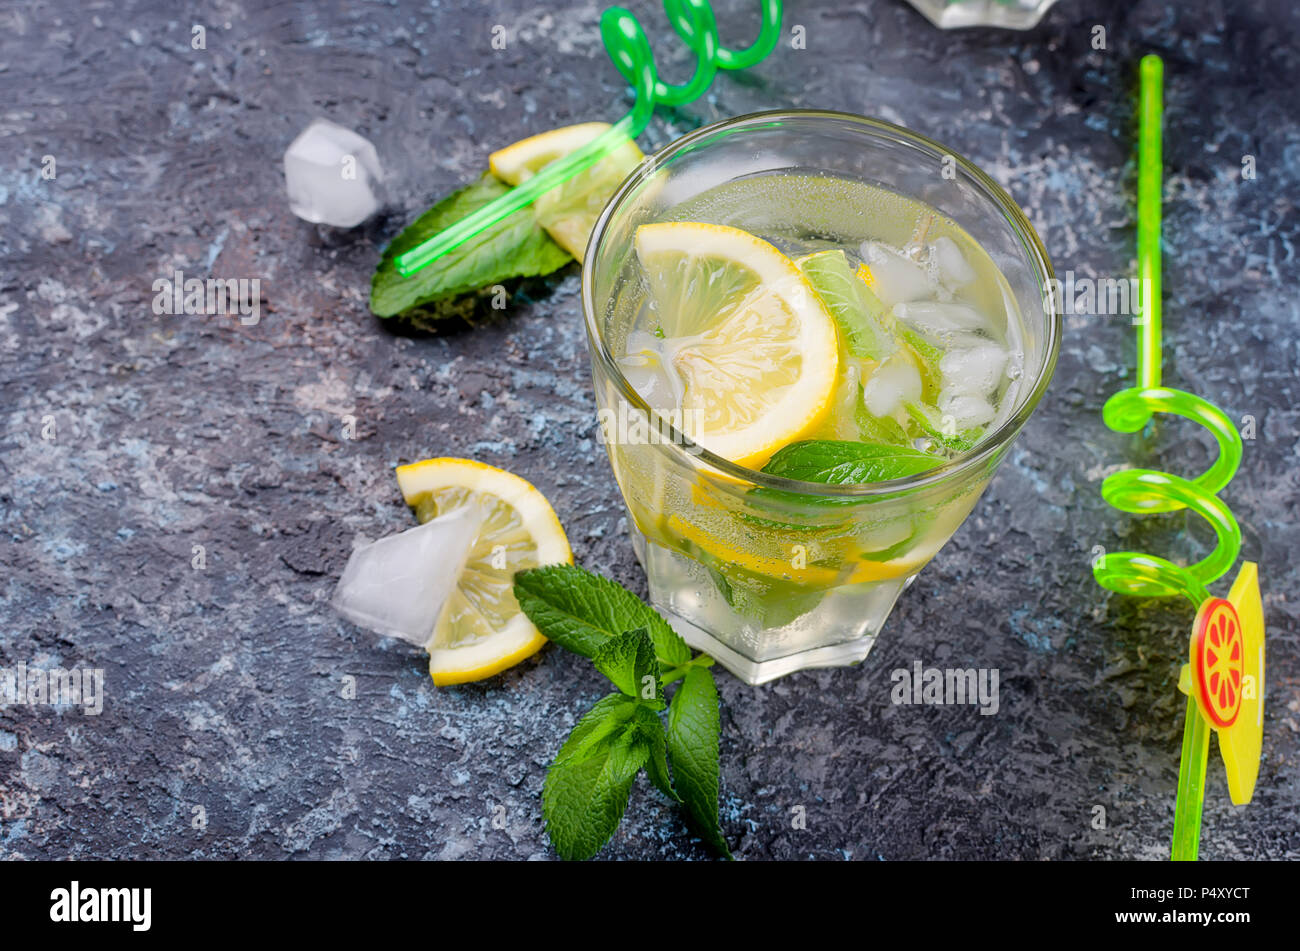 Fresh cold Mojito Cocktail with soda, ice, mint and lemon in glass and ingredients on a dark background, copy spase, selective focus - Stock Image